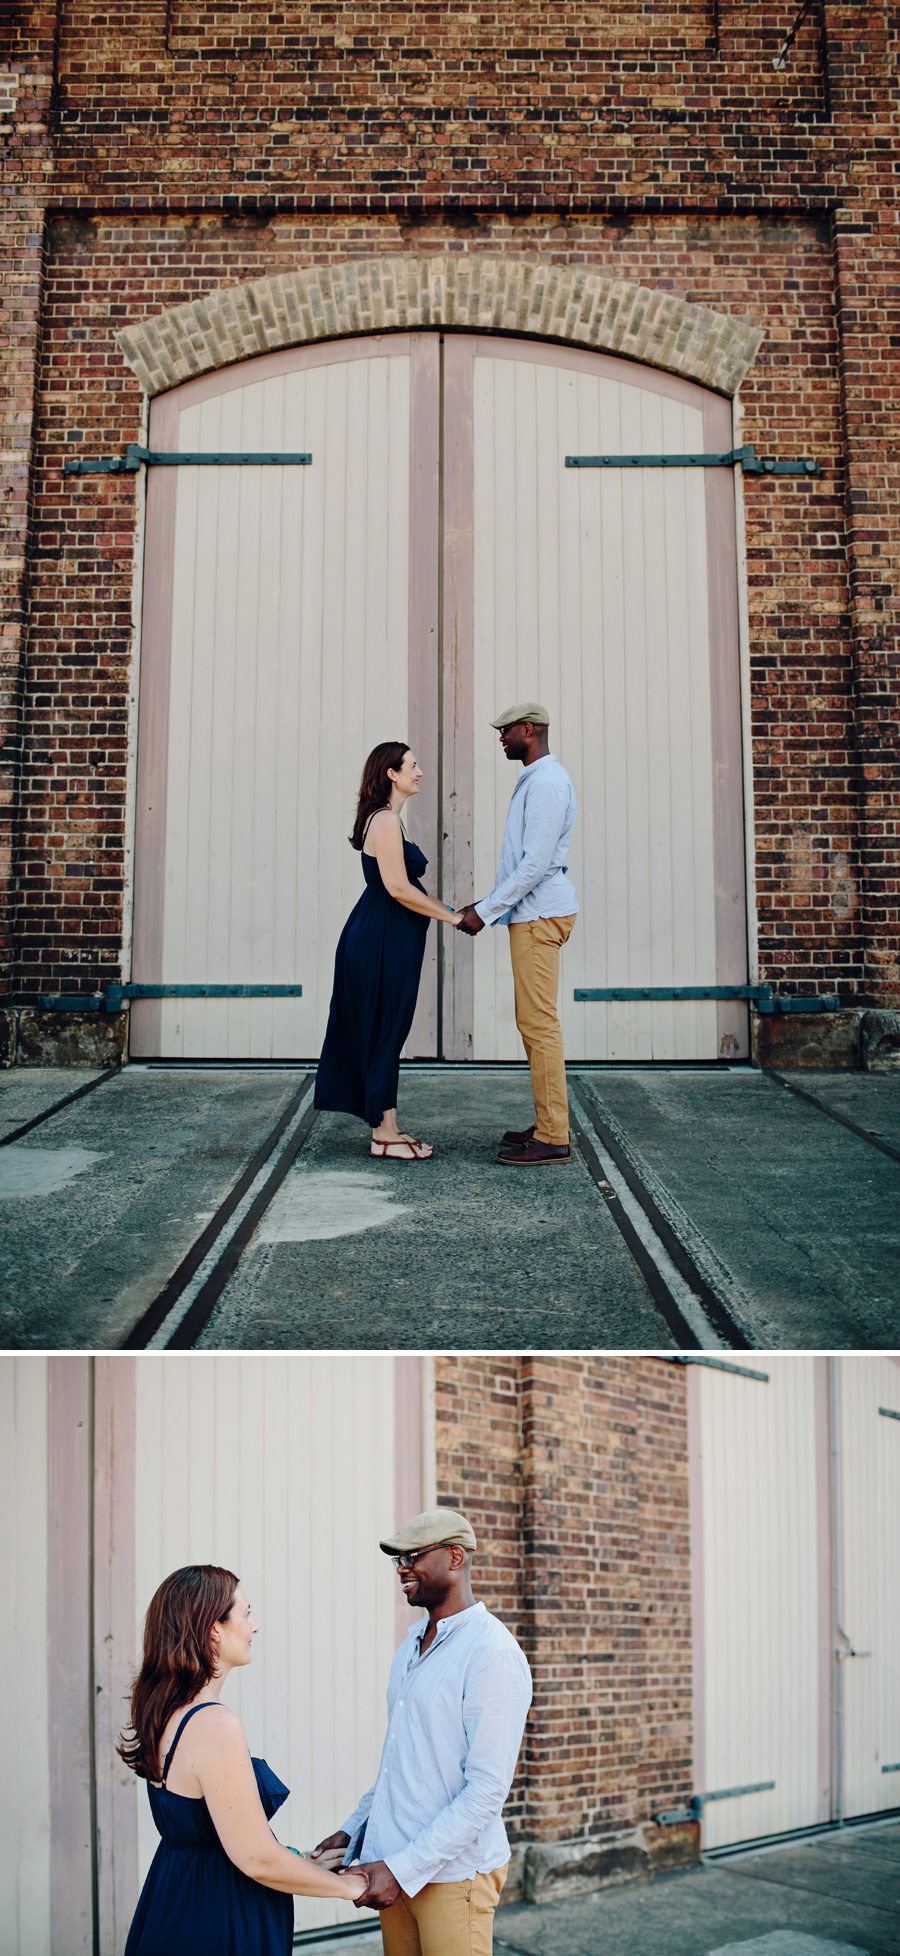 Carriageworks Engagement Photographer: Maternity Engagement Session